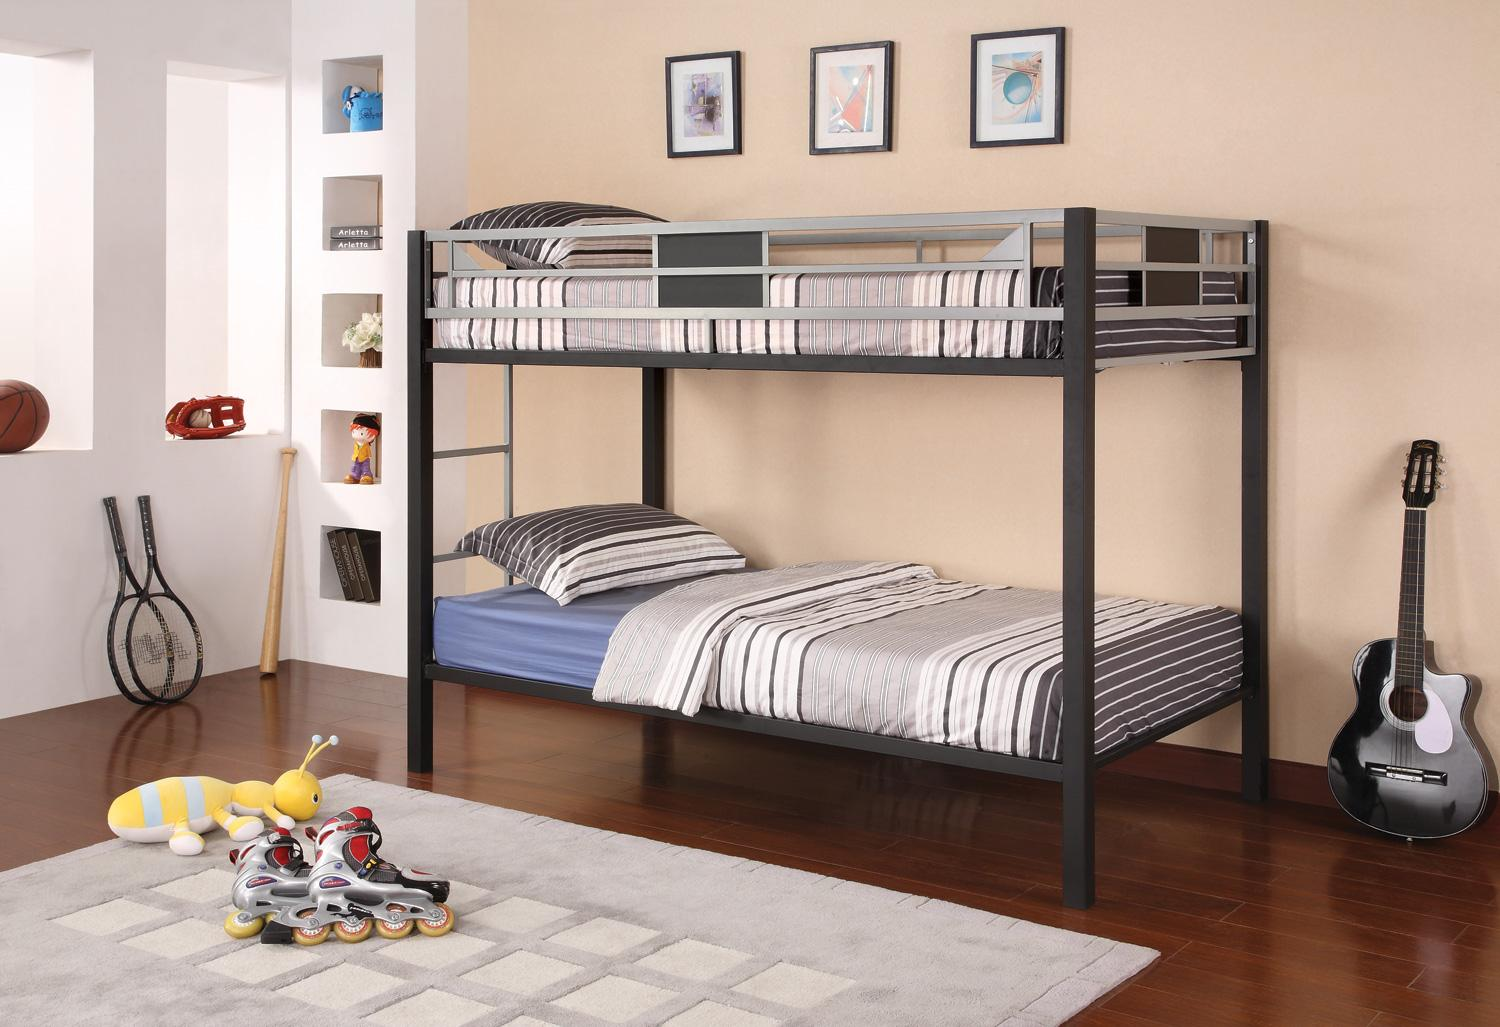 Alluring loft beds for teenagers with stripped bedding on wooden floor with rug matched with cream wall with pictures and rack for boys bedroom decor ideas